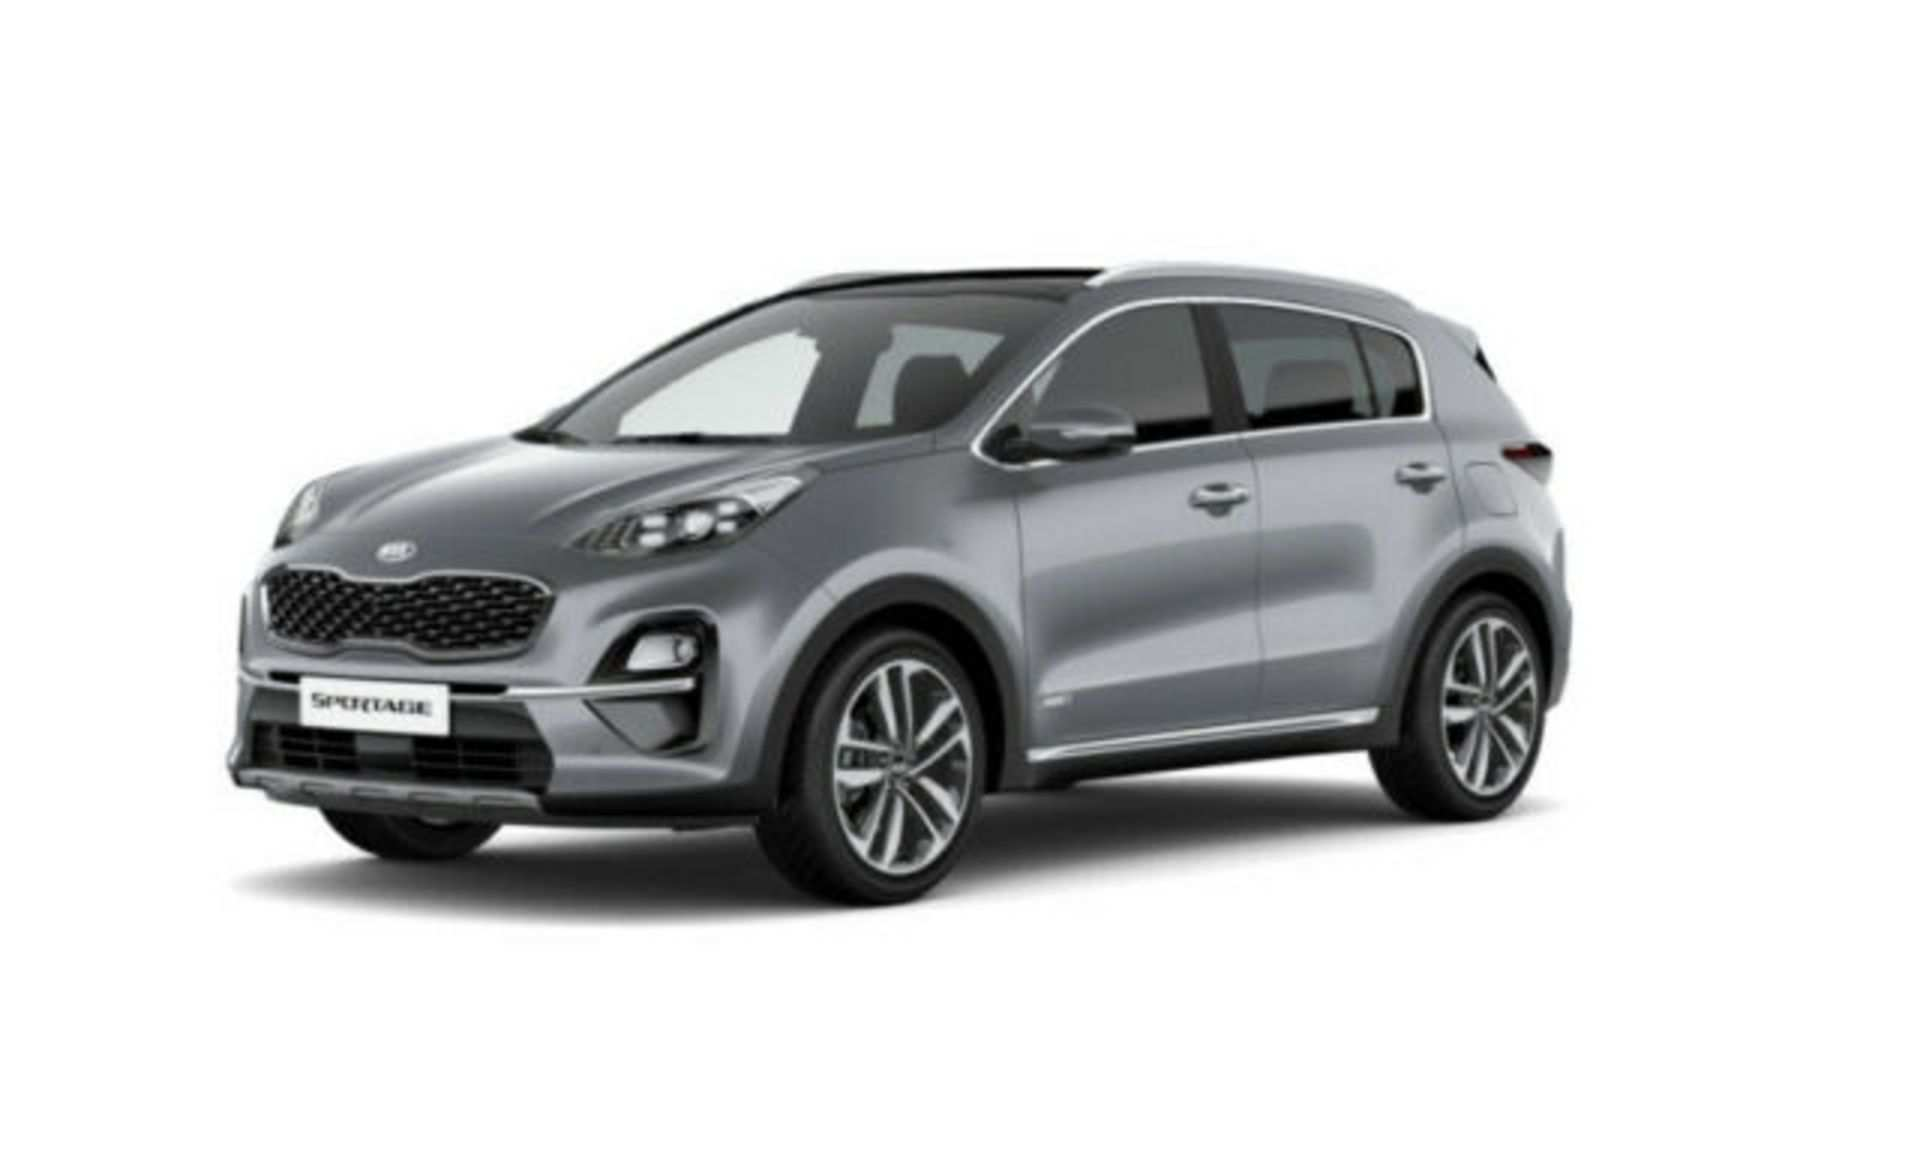 32 New Kia Turbo 2019 Research New